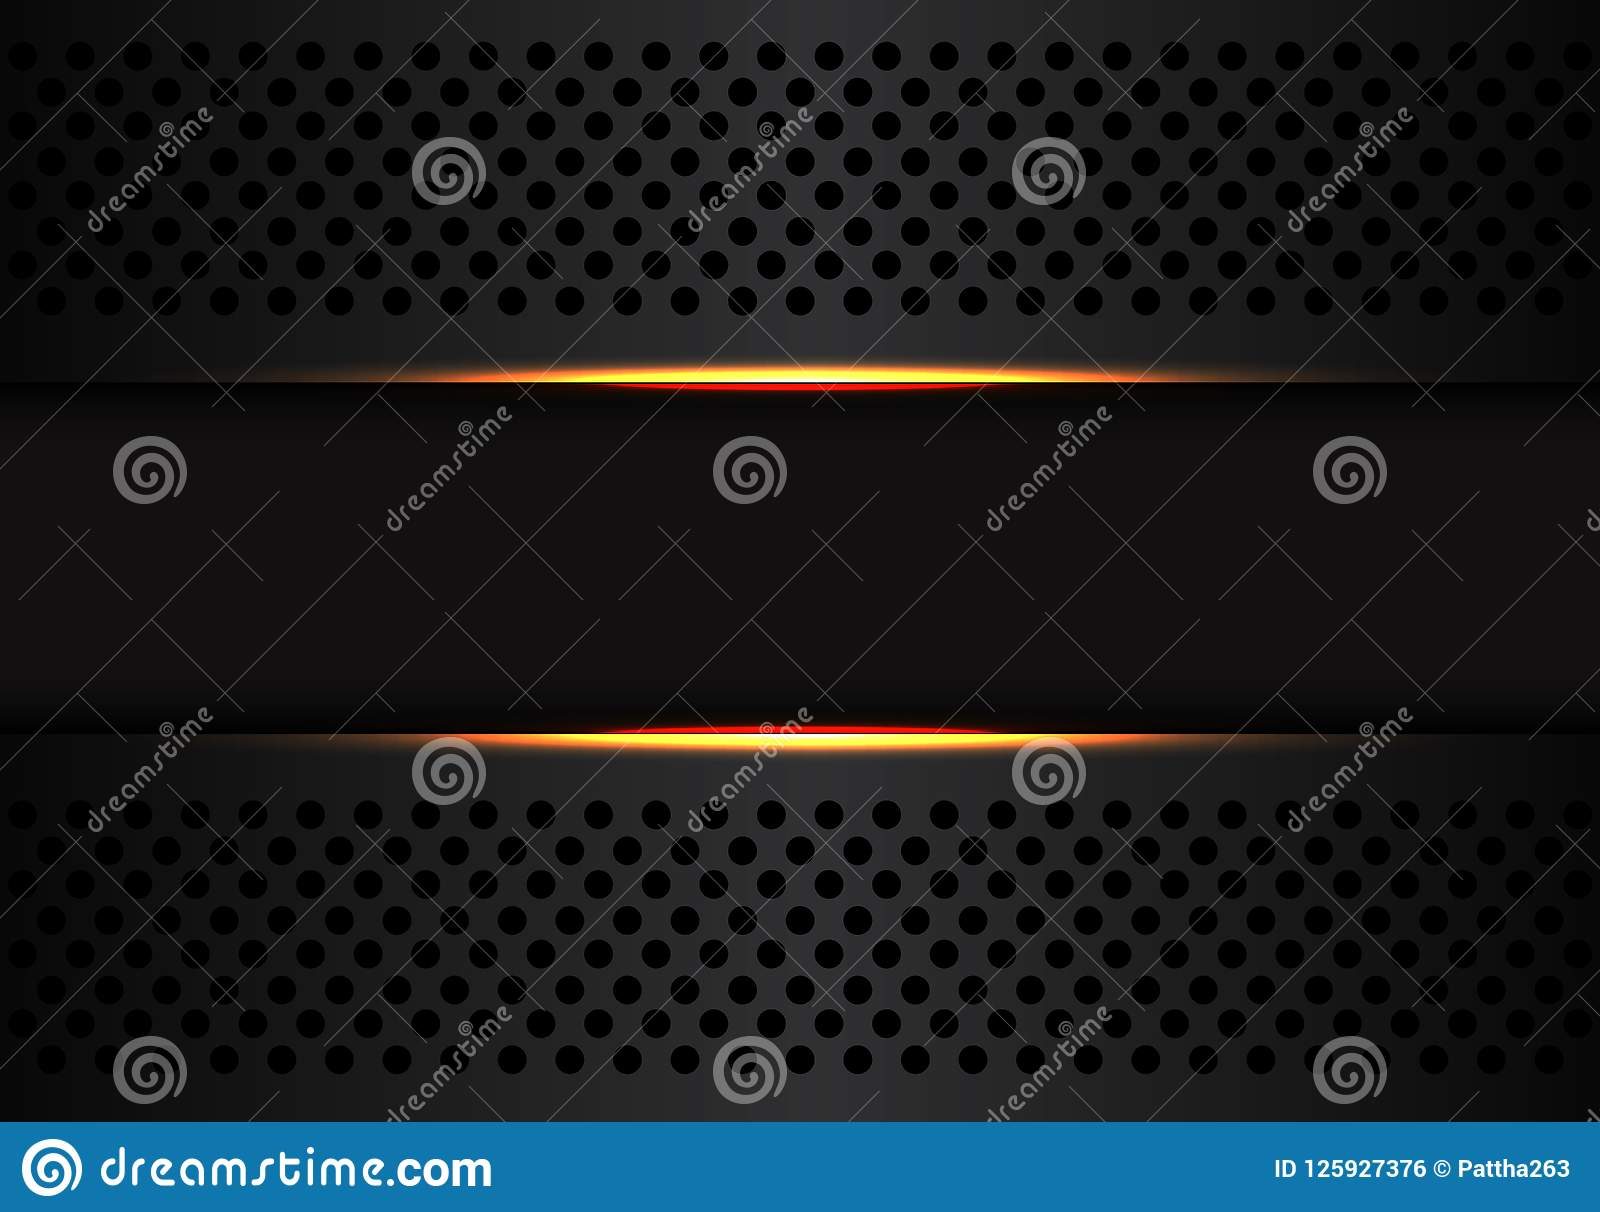 Technology Background With Circular Mesh: Abstract Dark Gray Banner On Black Circle Mesh With Yellow